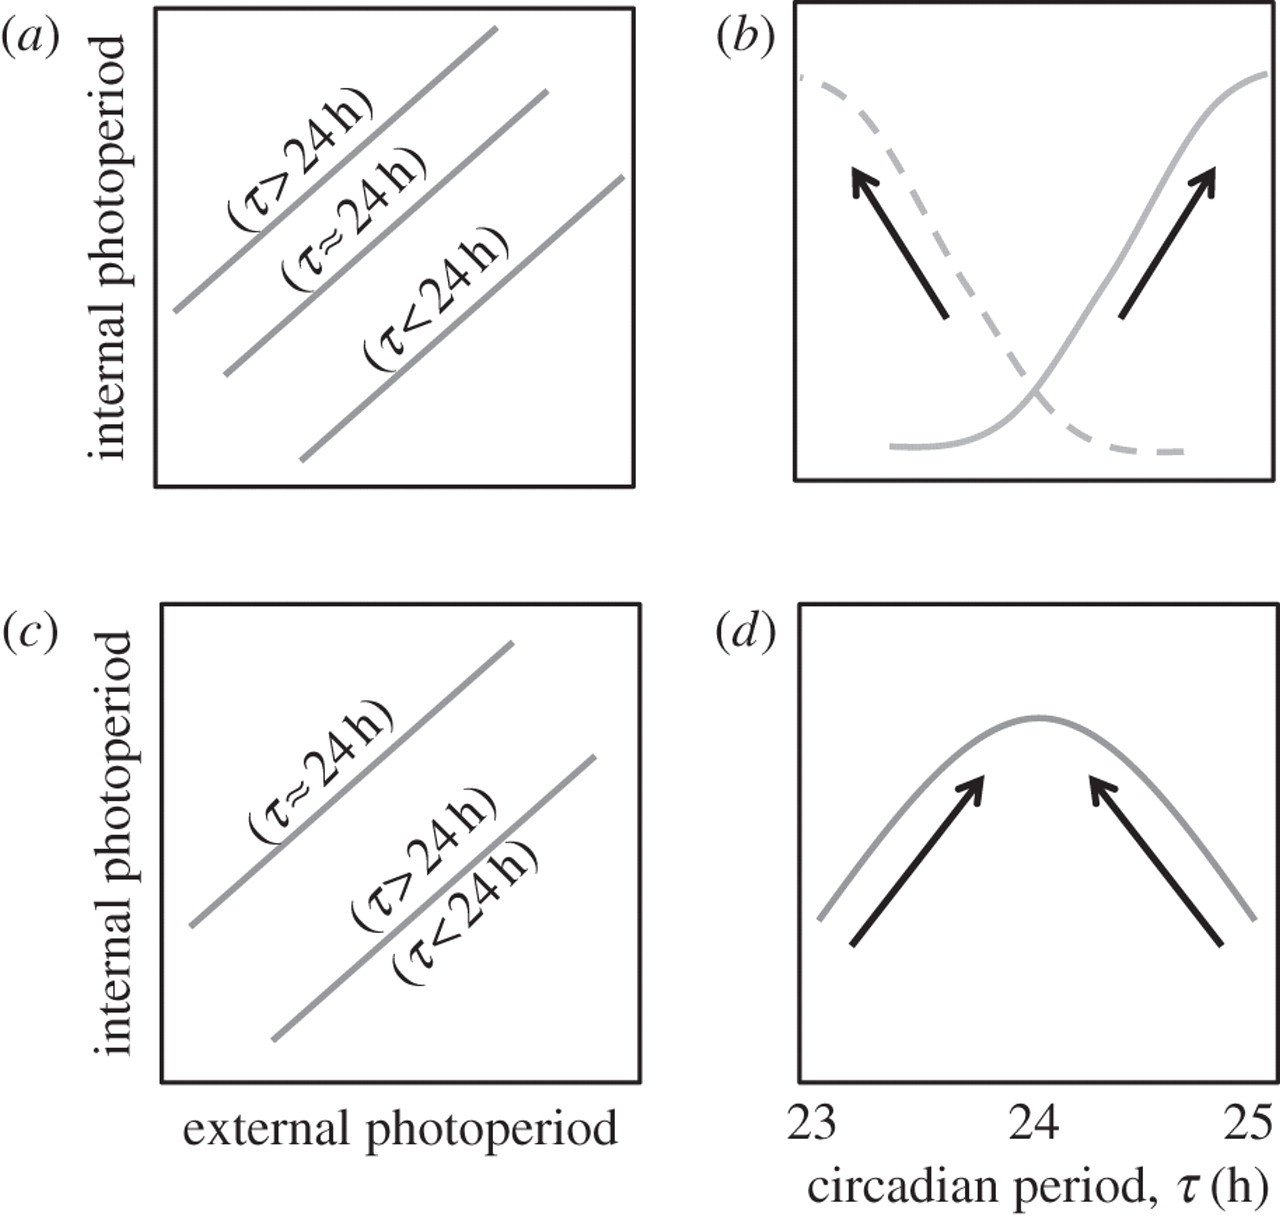 Evolution of time-keeping mechanisms: early emergence and adaptation